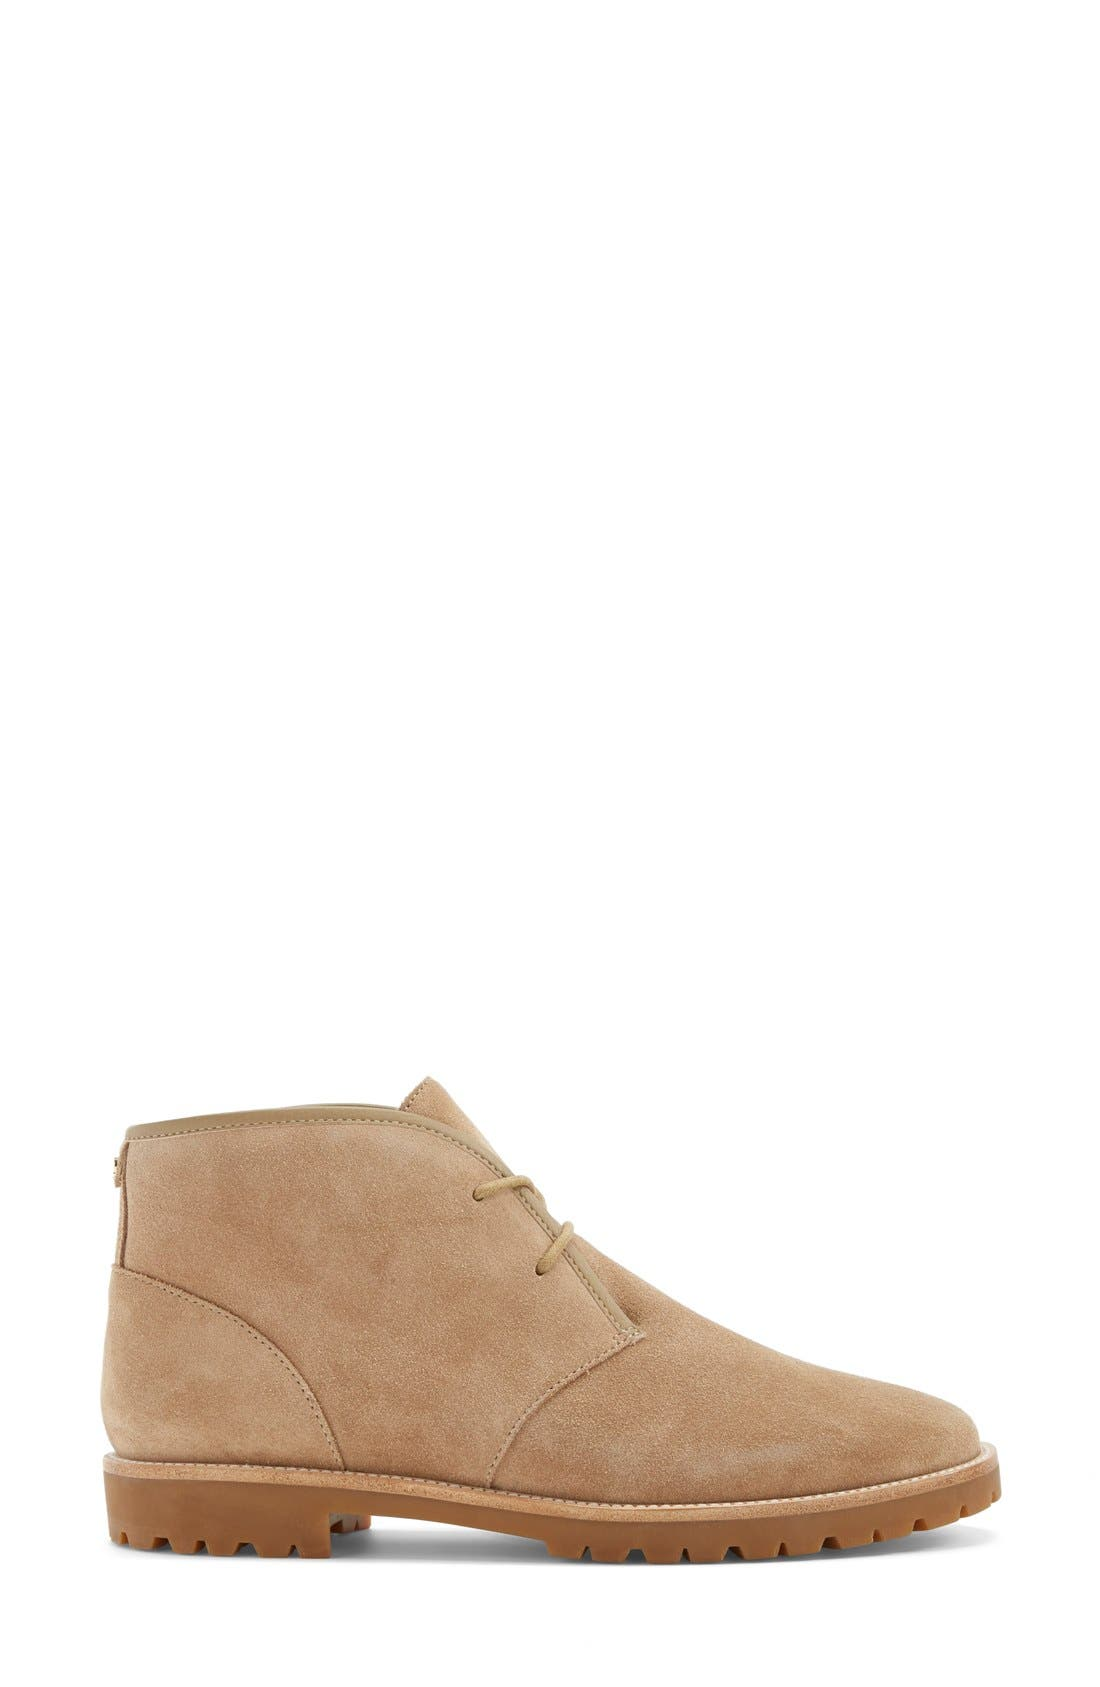 'Westbury' Chukka Bootie,                             Alternate thumbnail 4, color,                             292